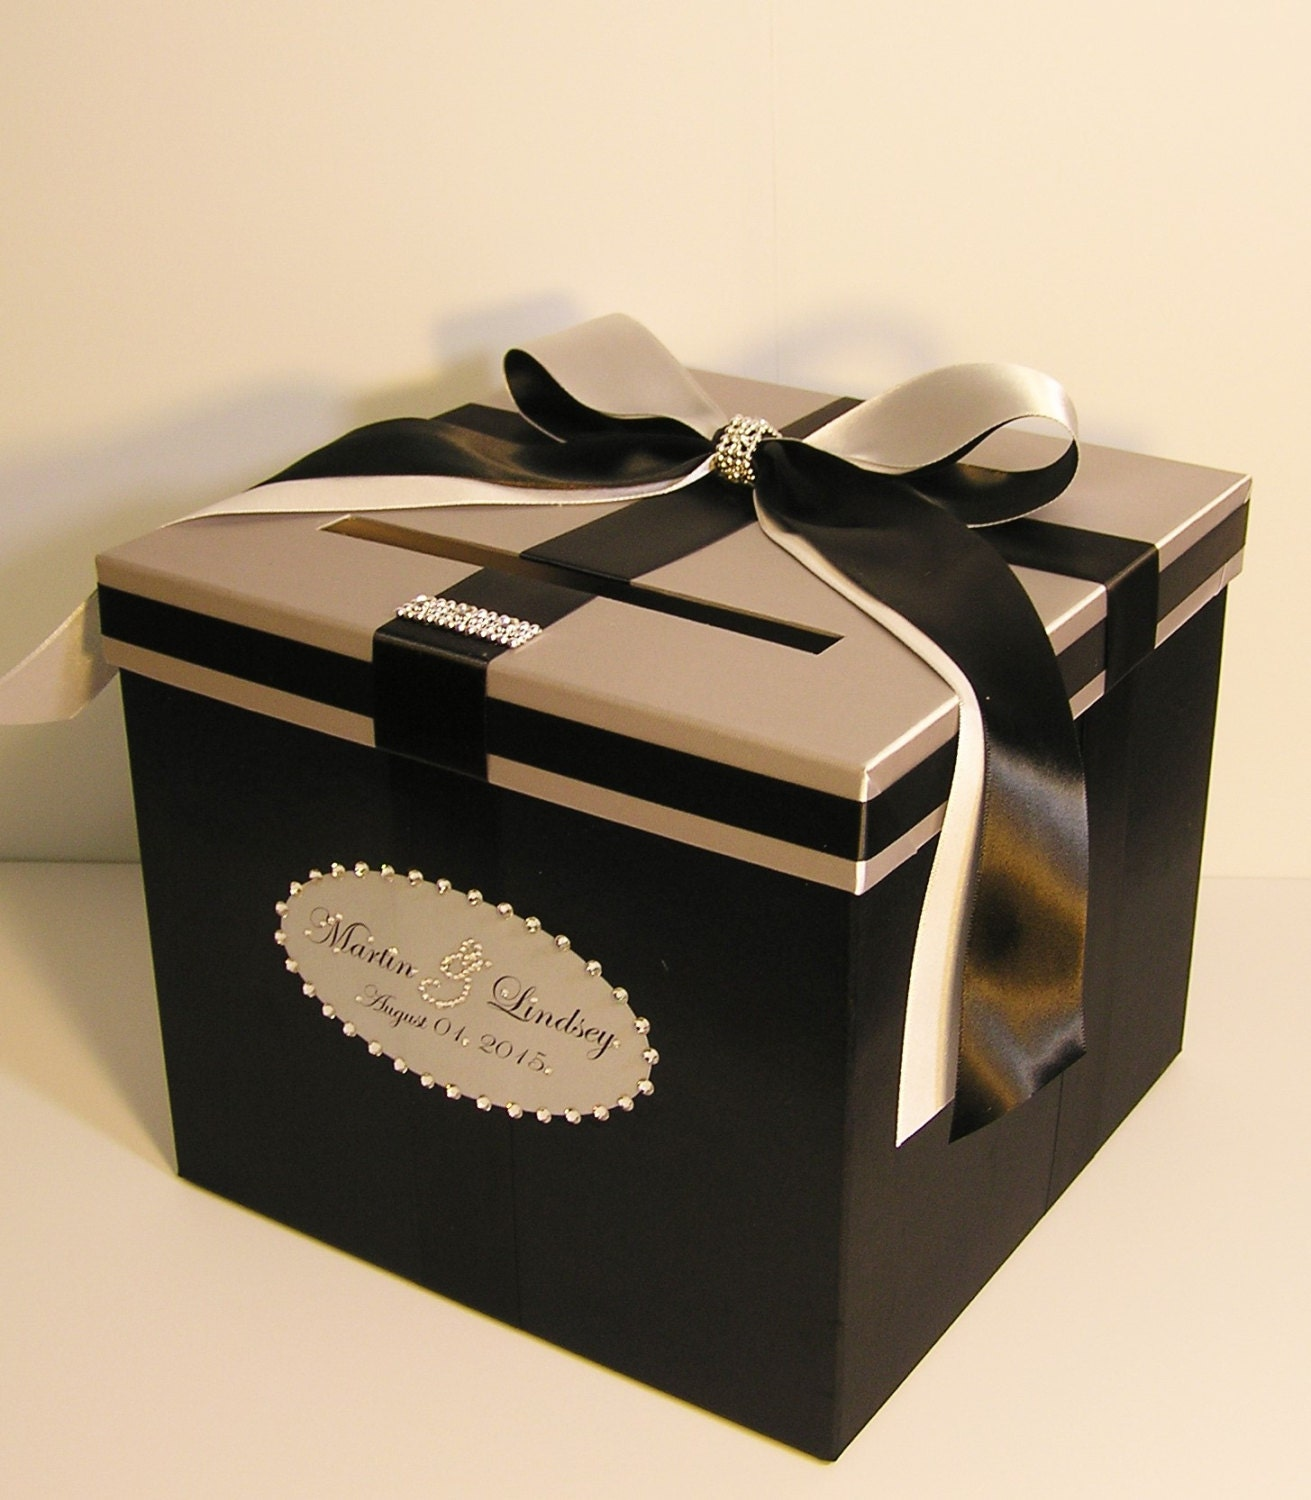 wedding card box silver and black gift box money card. Black Bedroom Furniture Sets. Home Design Ideas